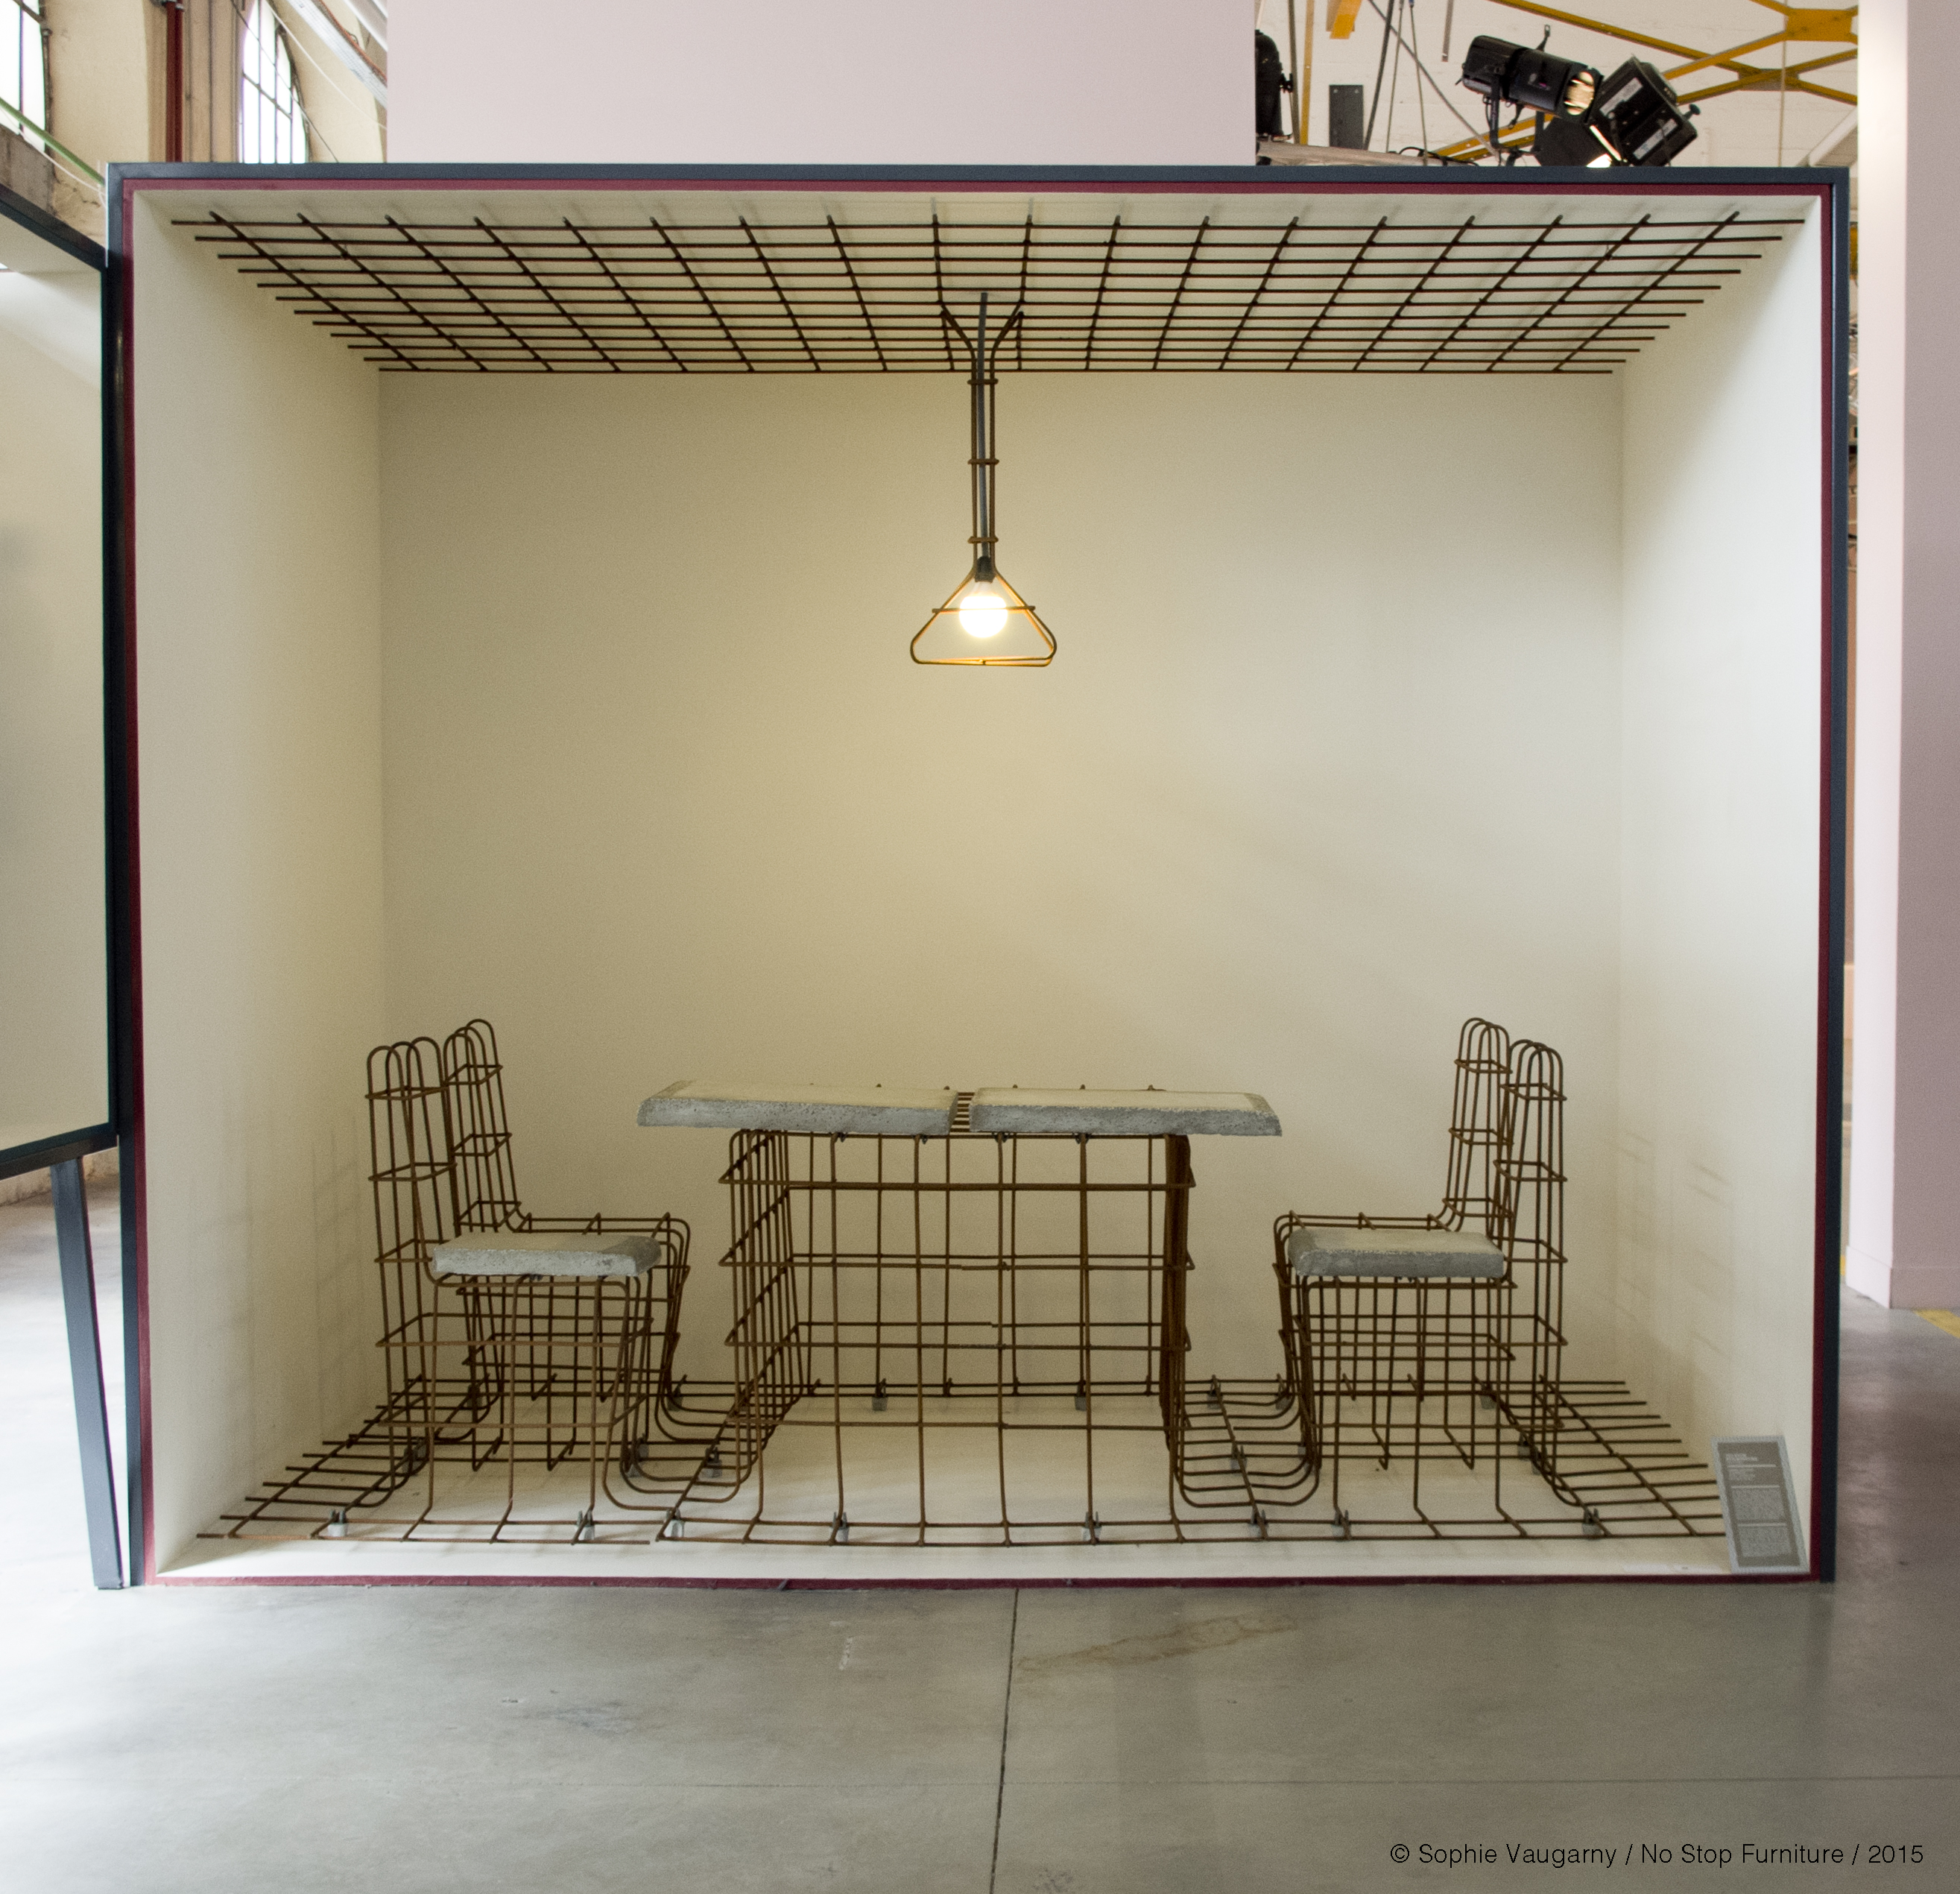 St Etienne Design Biennale Internationale Design St Etienne 2015 Sophie Vaugarny